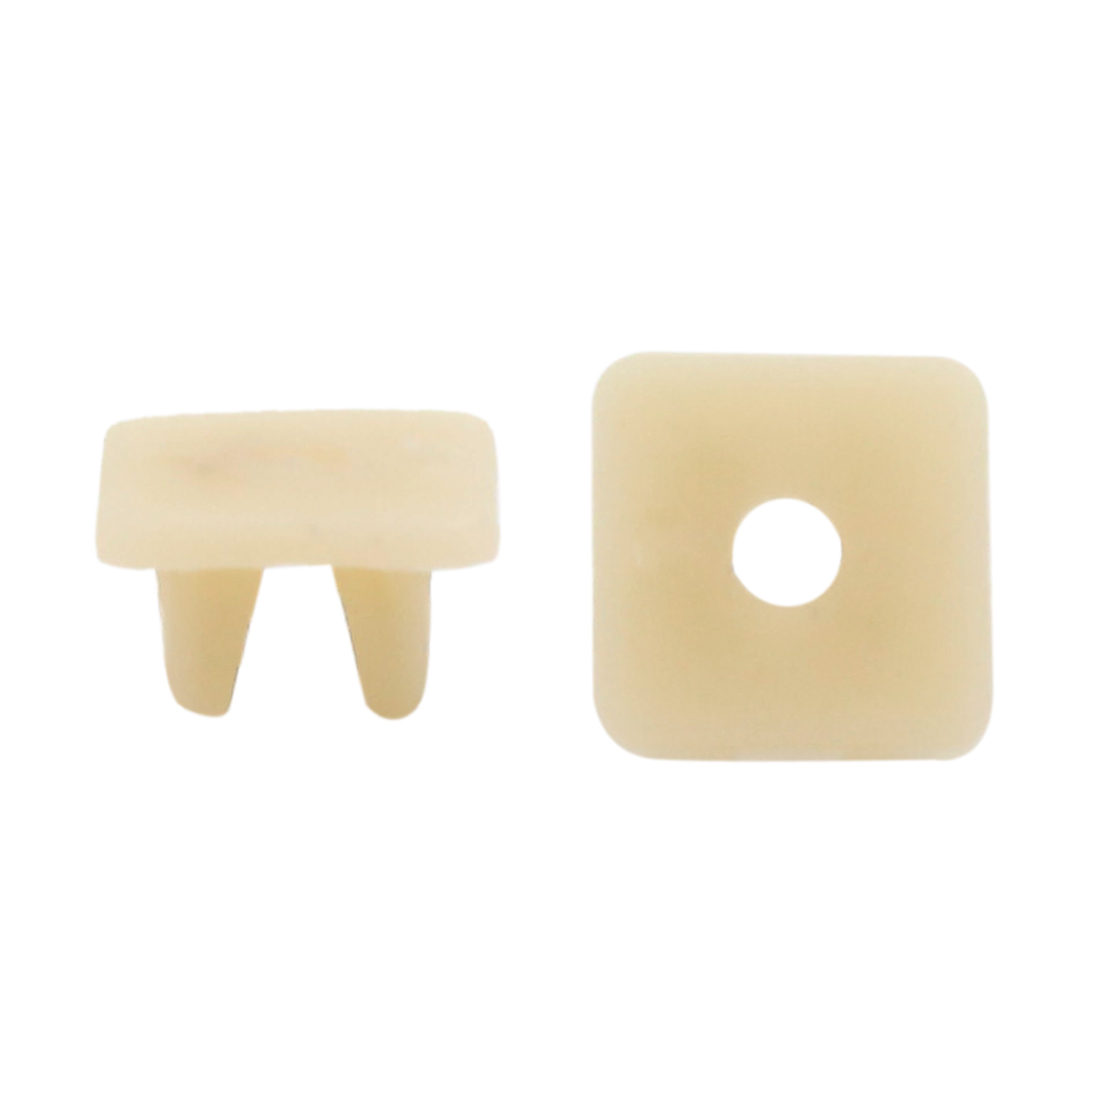 40pcs 9 x 8mm Hole Beige Plastic Rivets Fastener Push Clips for Car Auto Fender